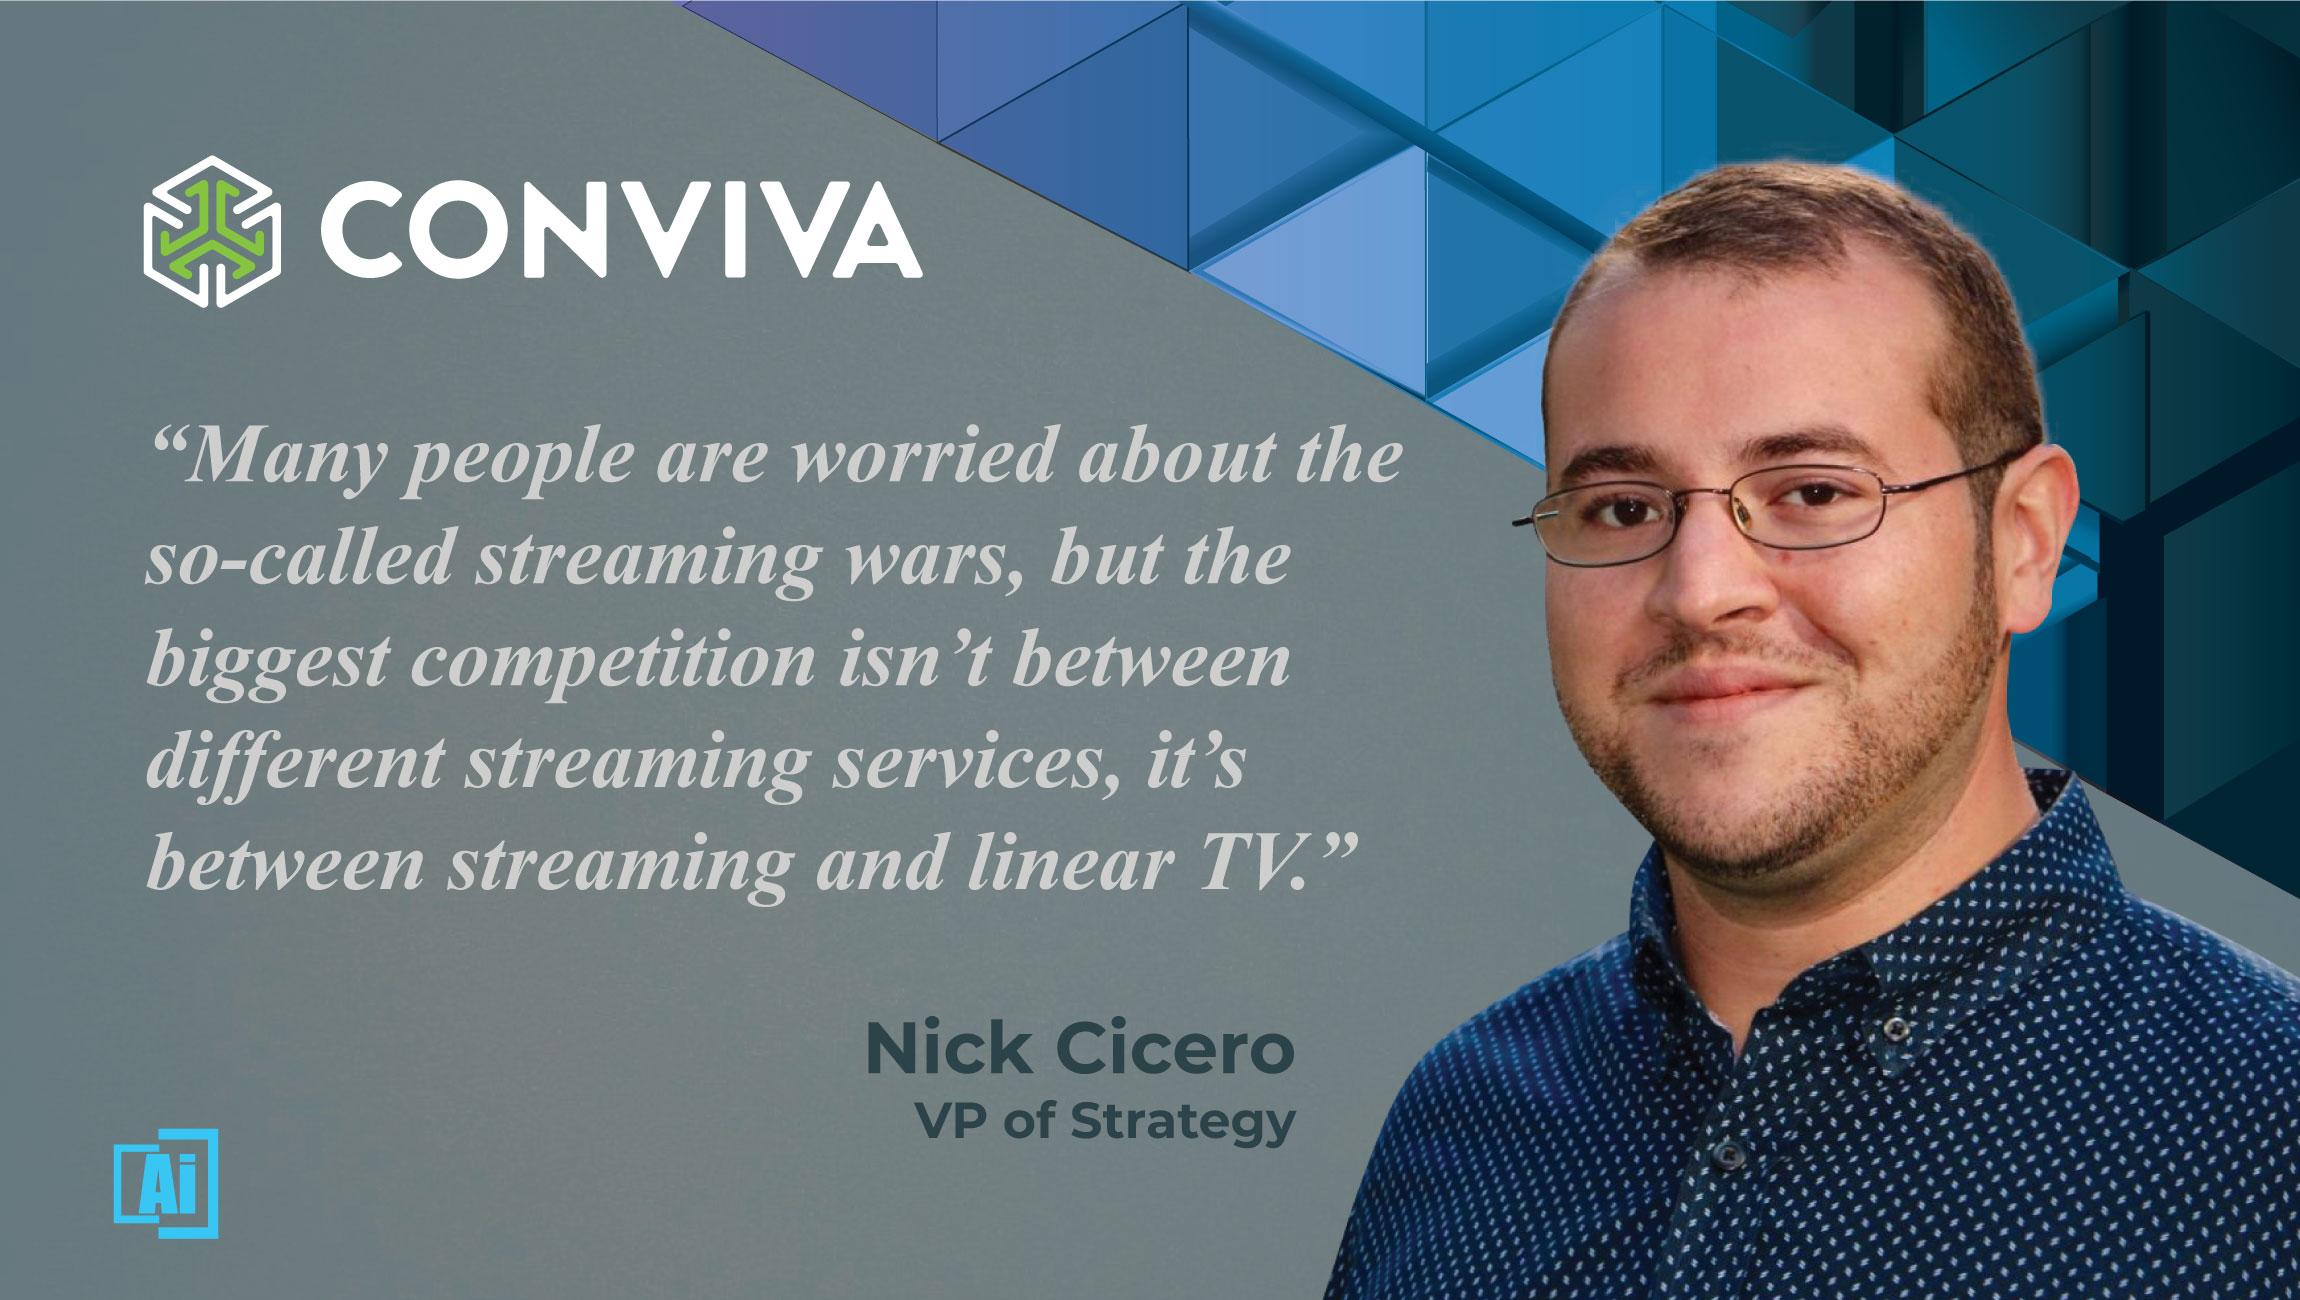 AiThority Interview with Nick Cicero, VP Strategy at Conviva